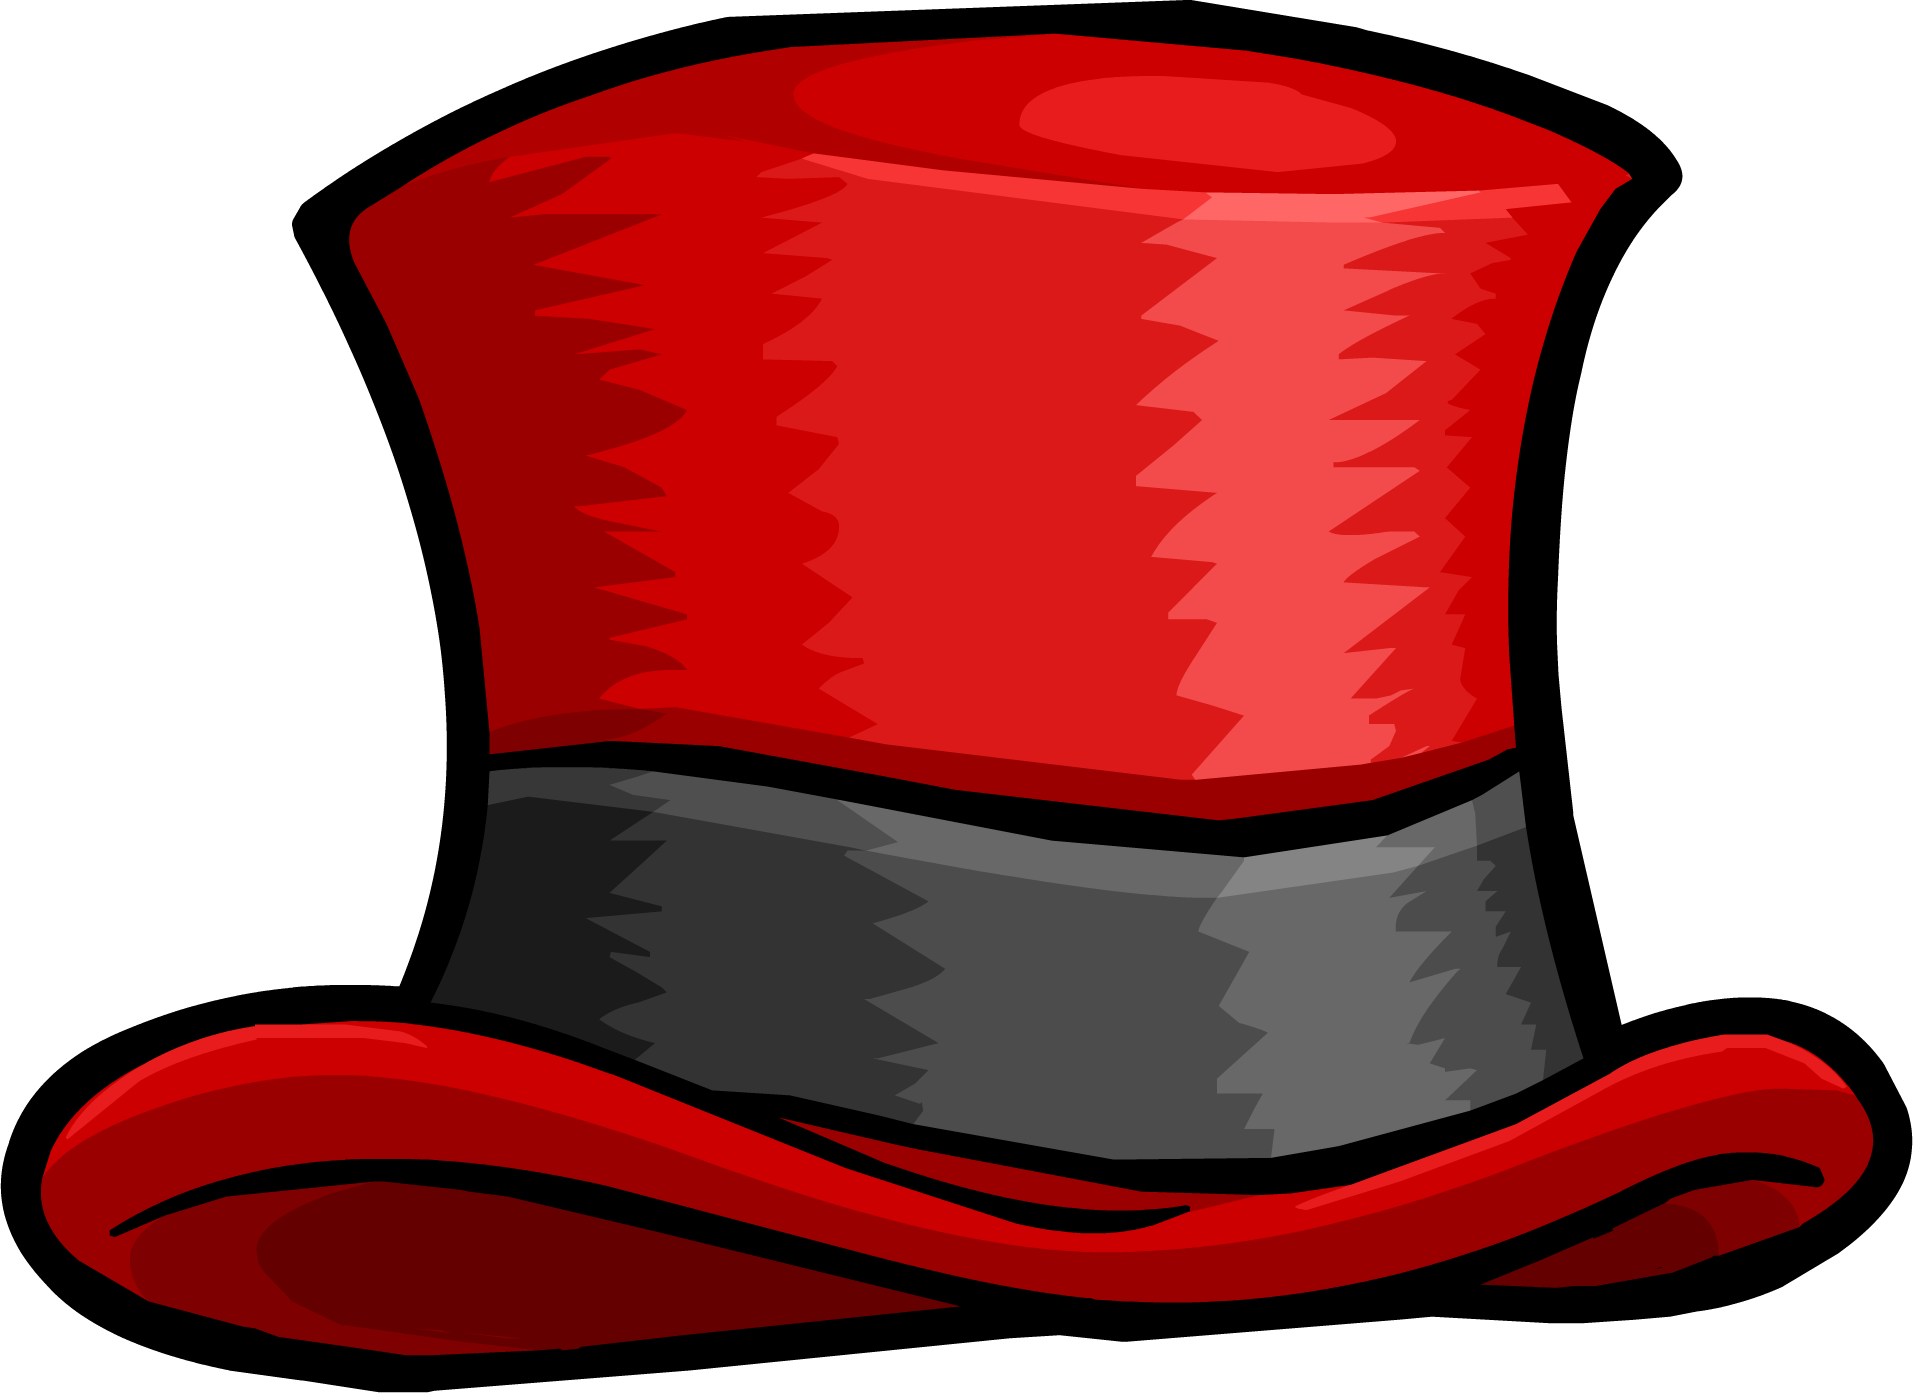 Circus clipart hat Wikia Ring Master Master powered